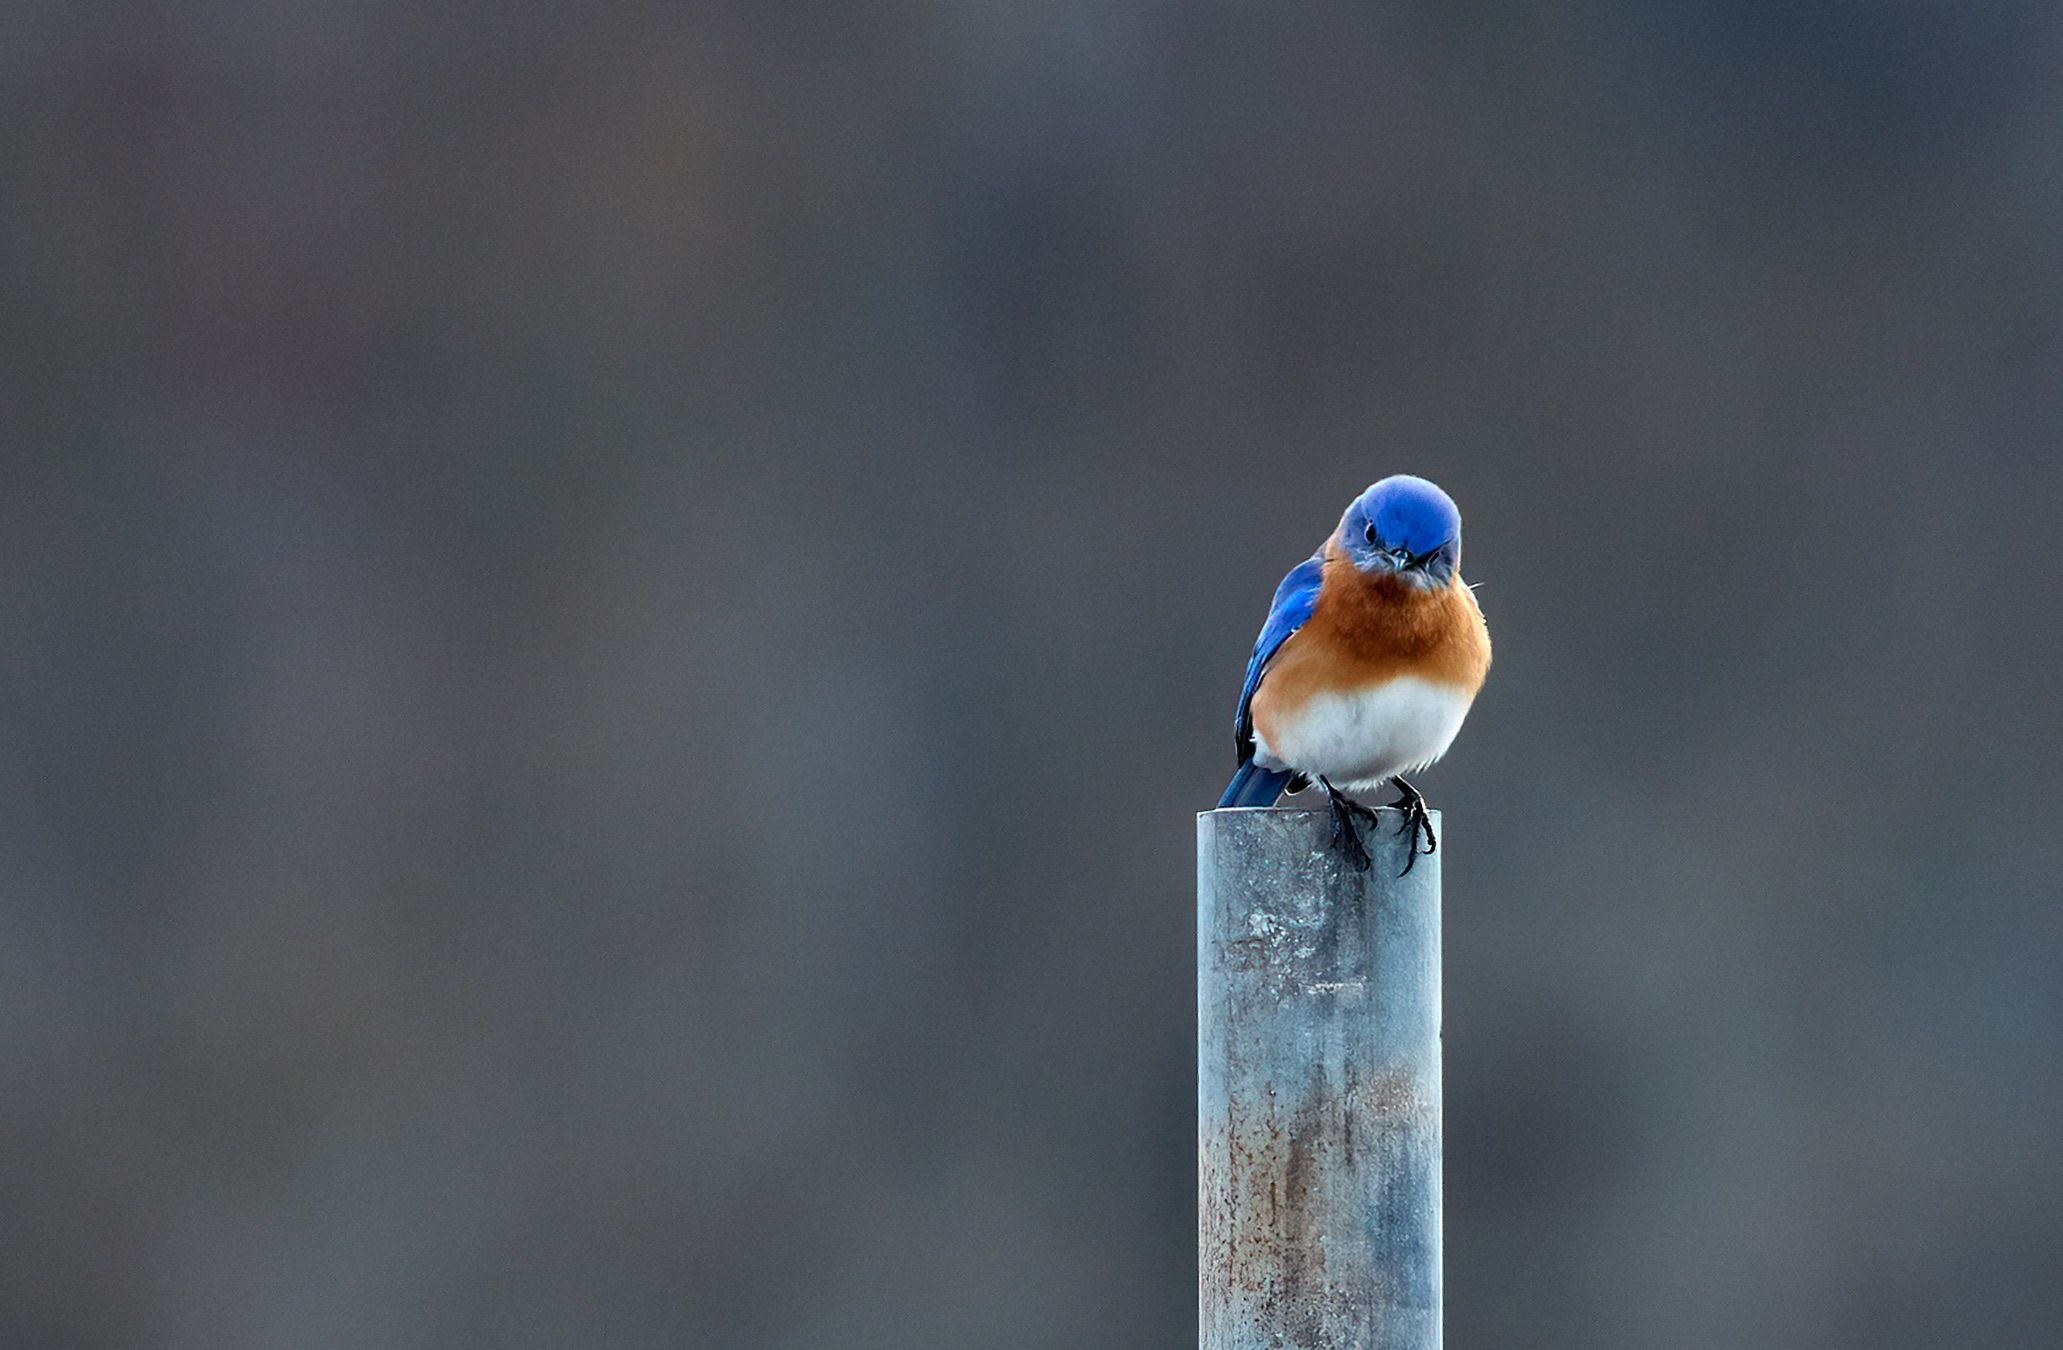 _ARK8536 bluebird pout